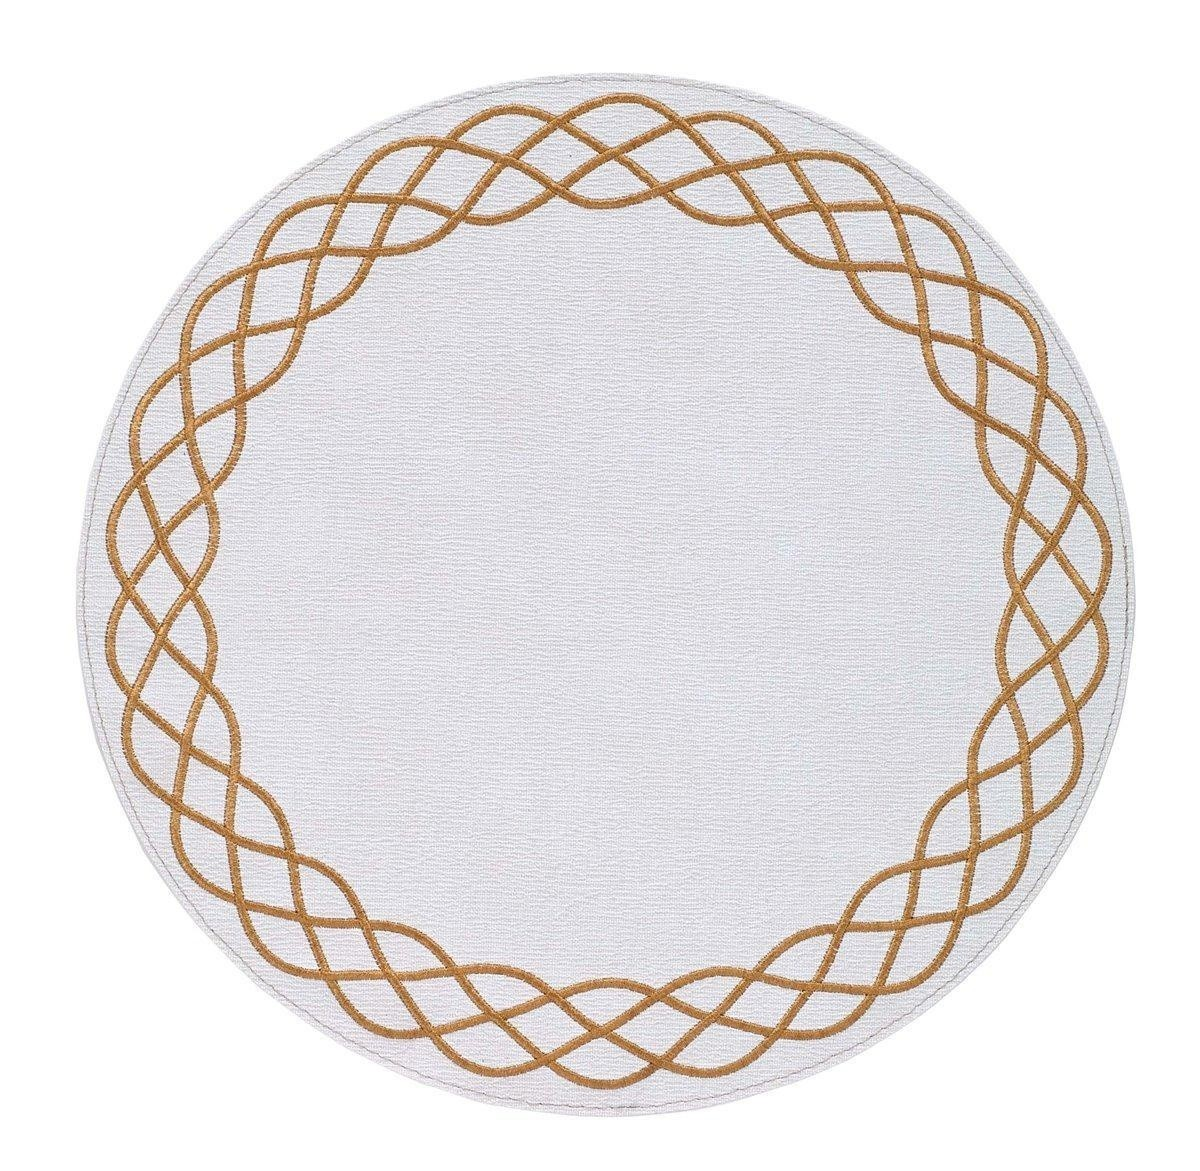 Bodrum Round Ivory And Gold Helix Placemats Set 6